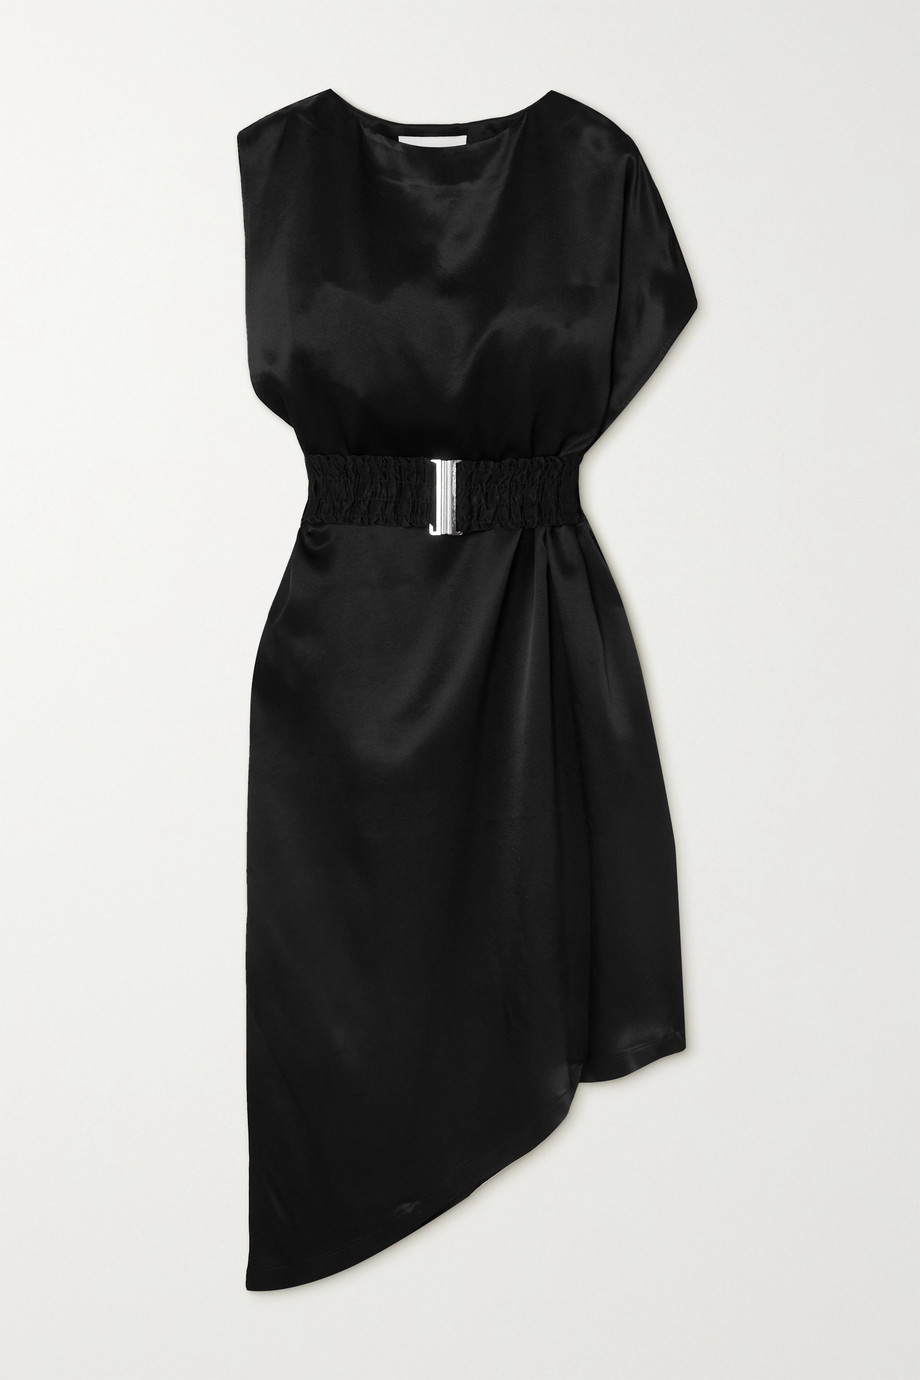 ENVELOPE1976 + NET SUSTAIN Bordeaux asymmetric belted satin dress